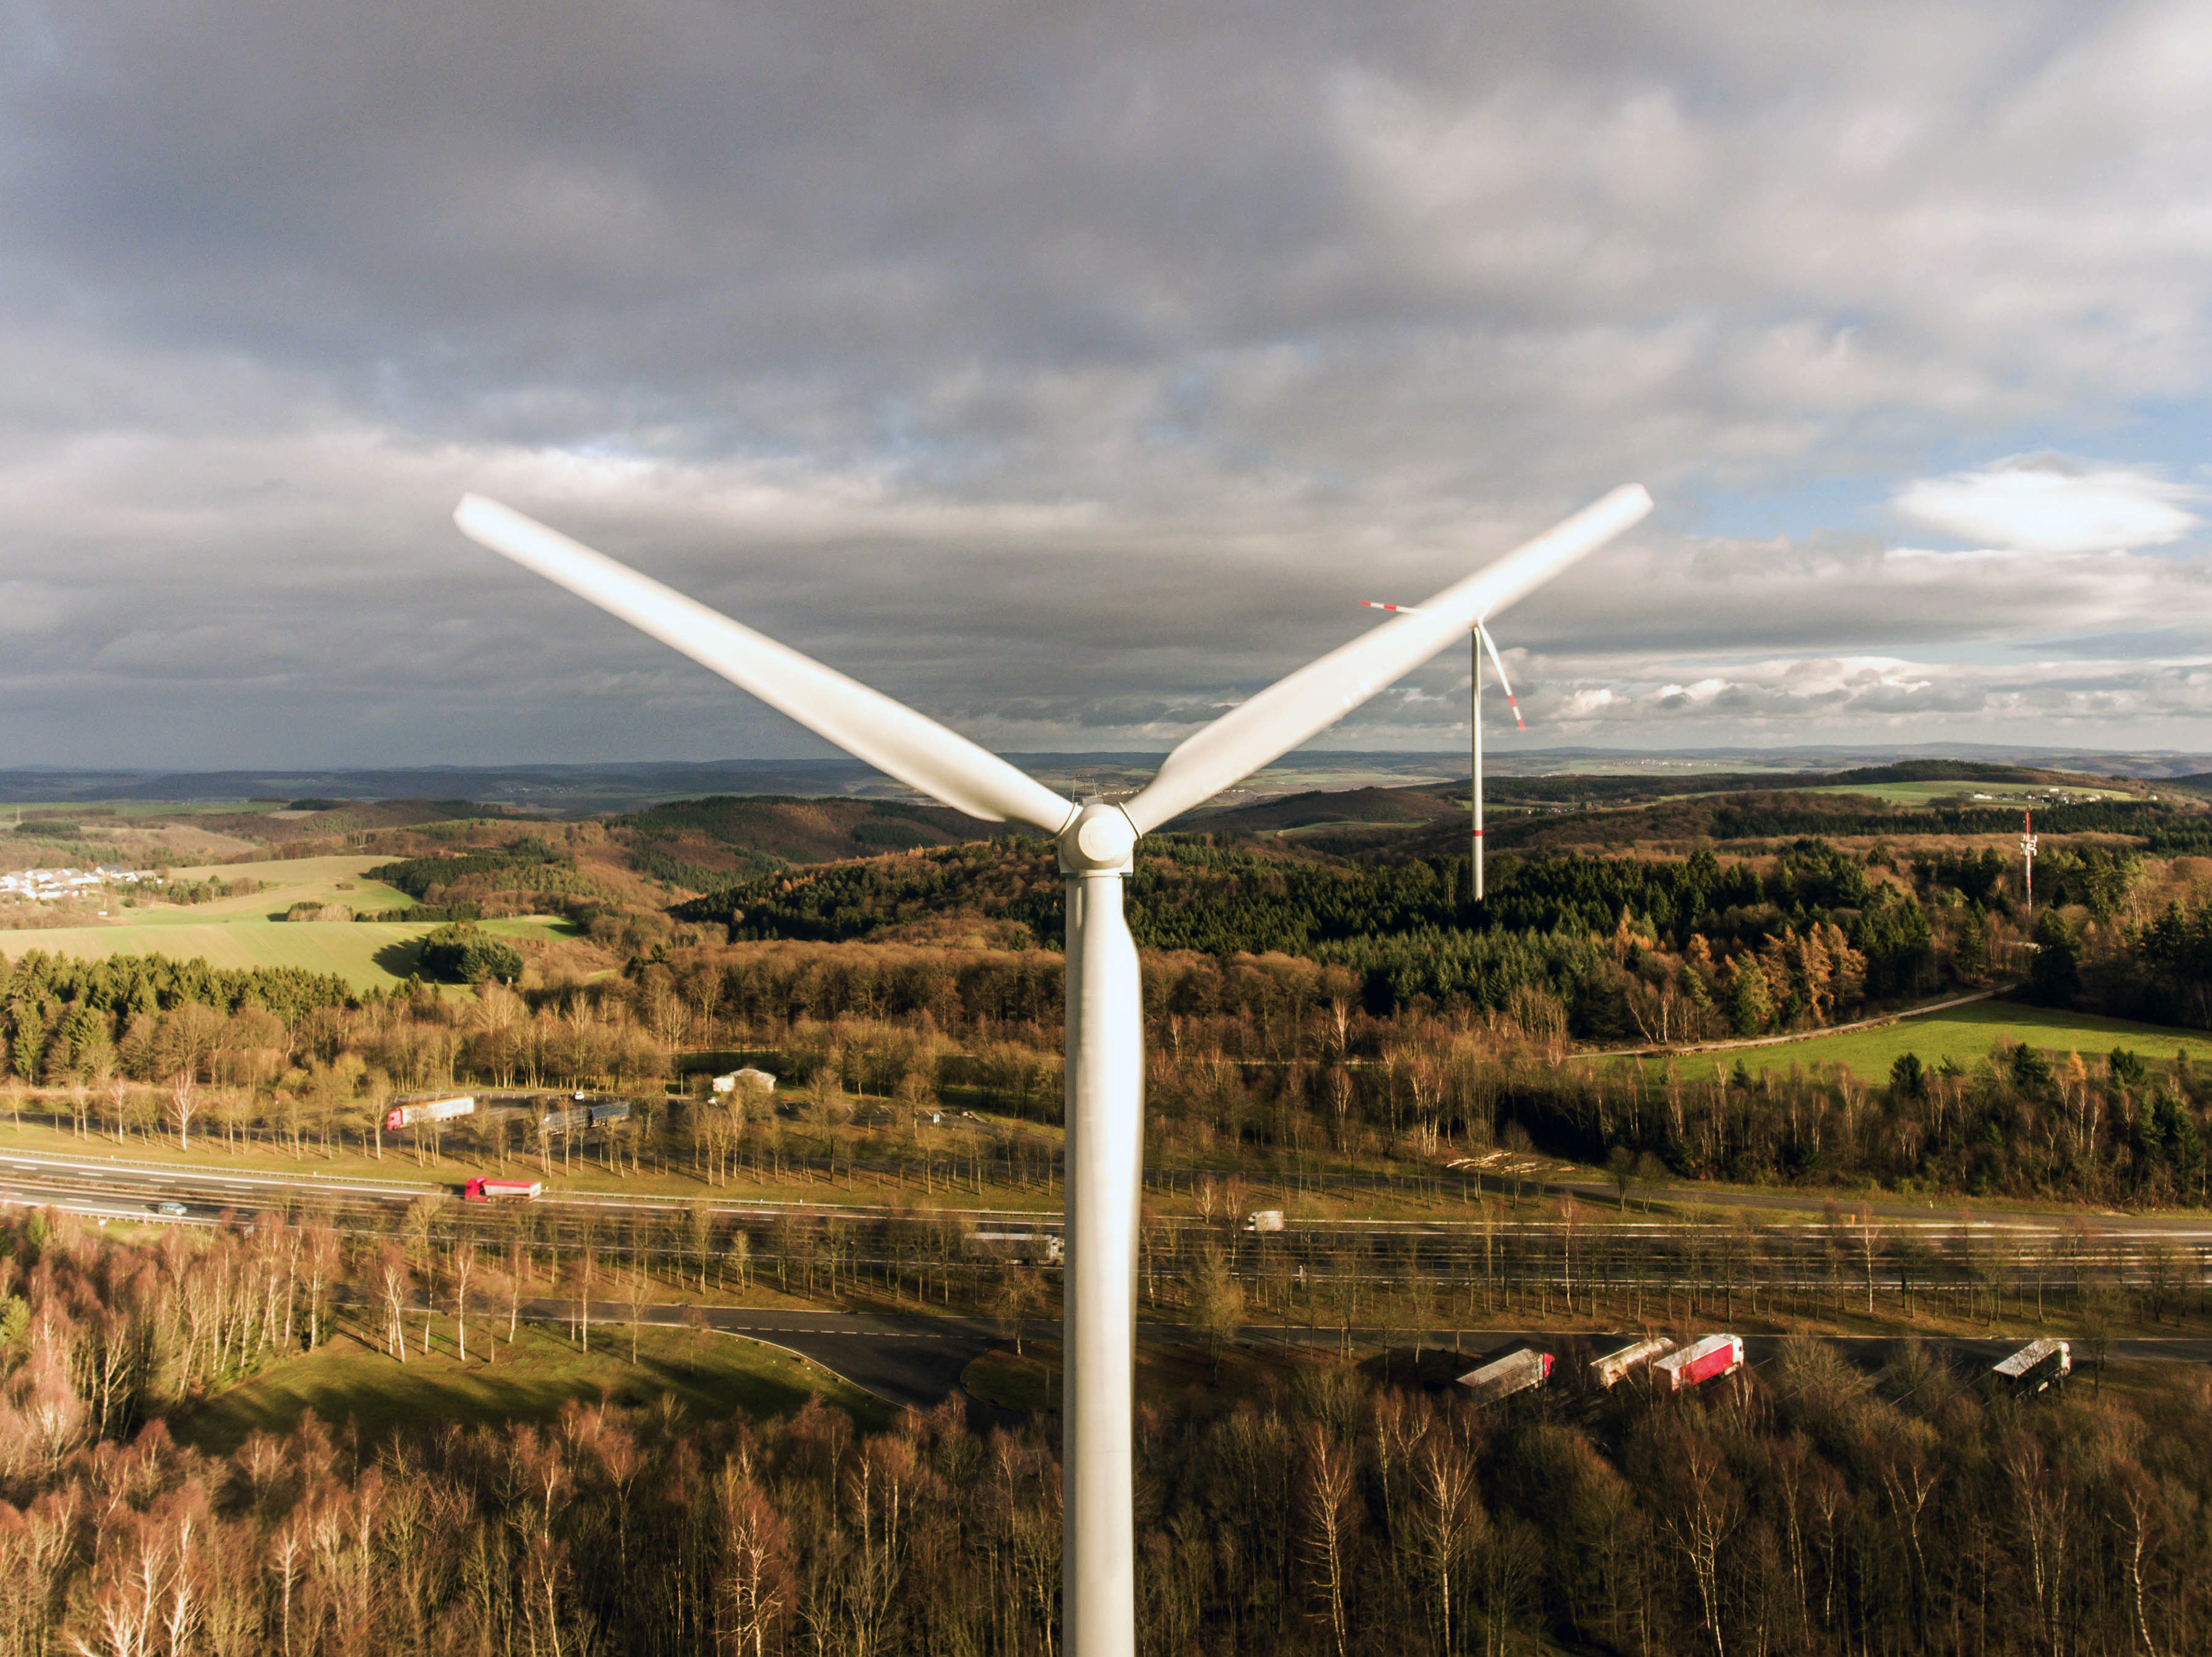 A panorama aerial helicopter view over wind farm landscape in Germany with white generator turbines